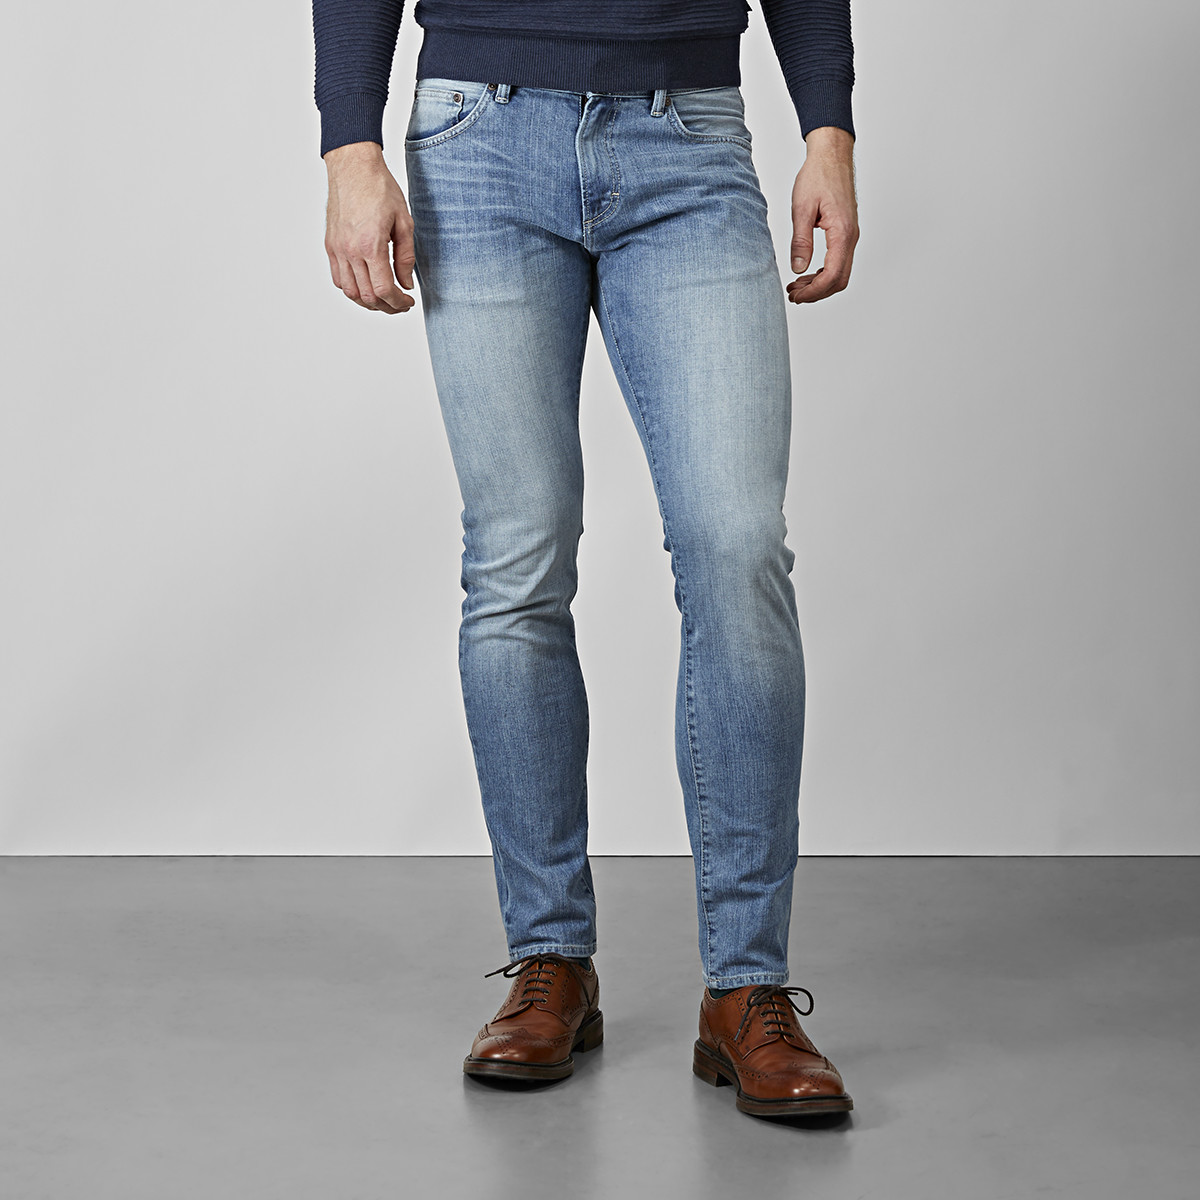 BOWERY LIGHT WASH JEANS